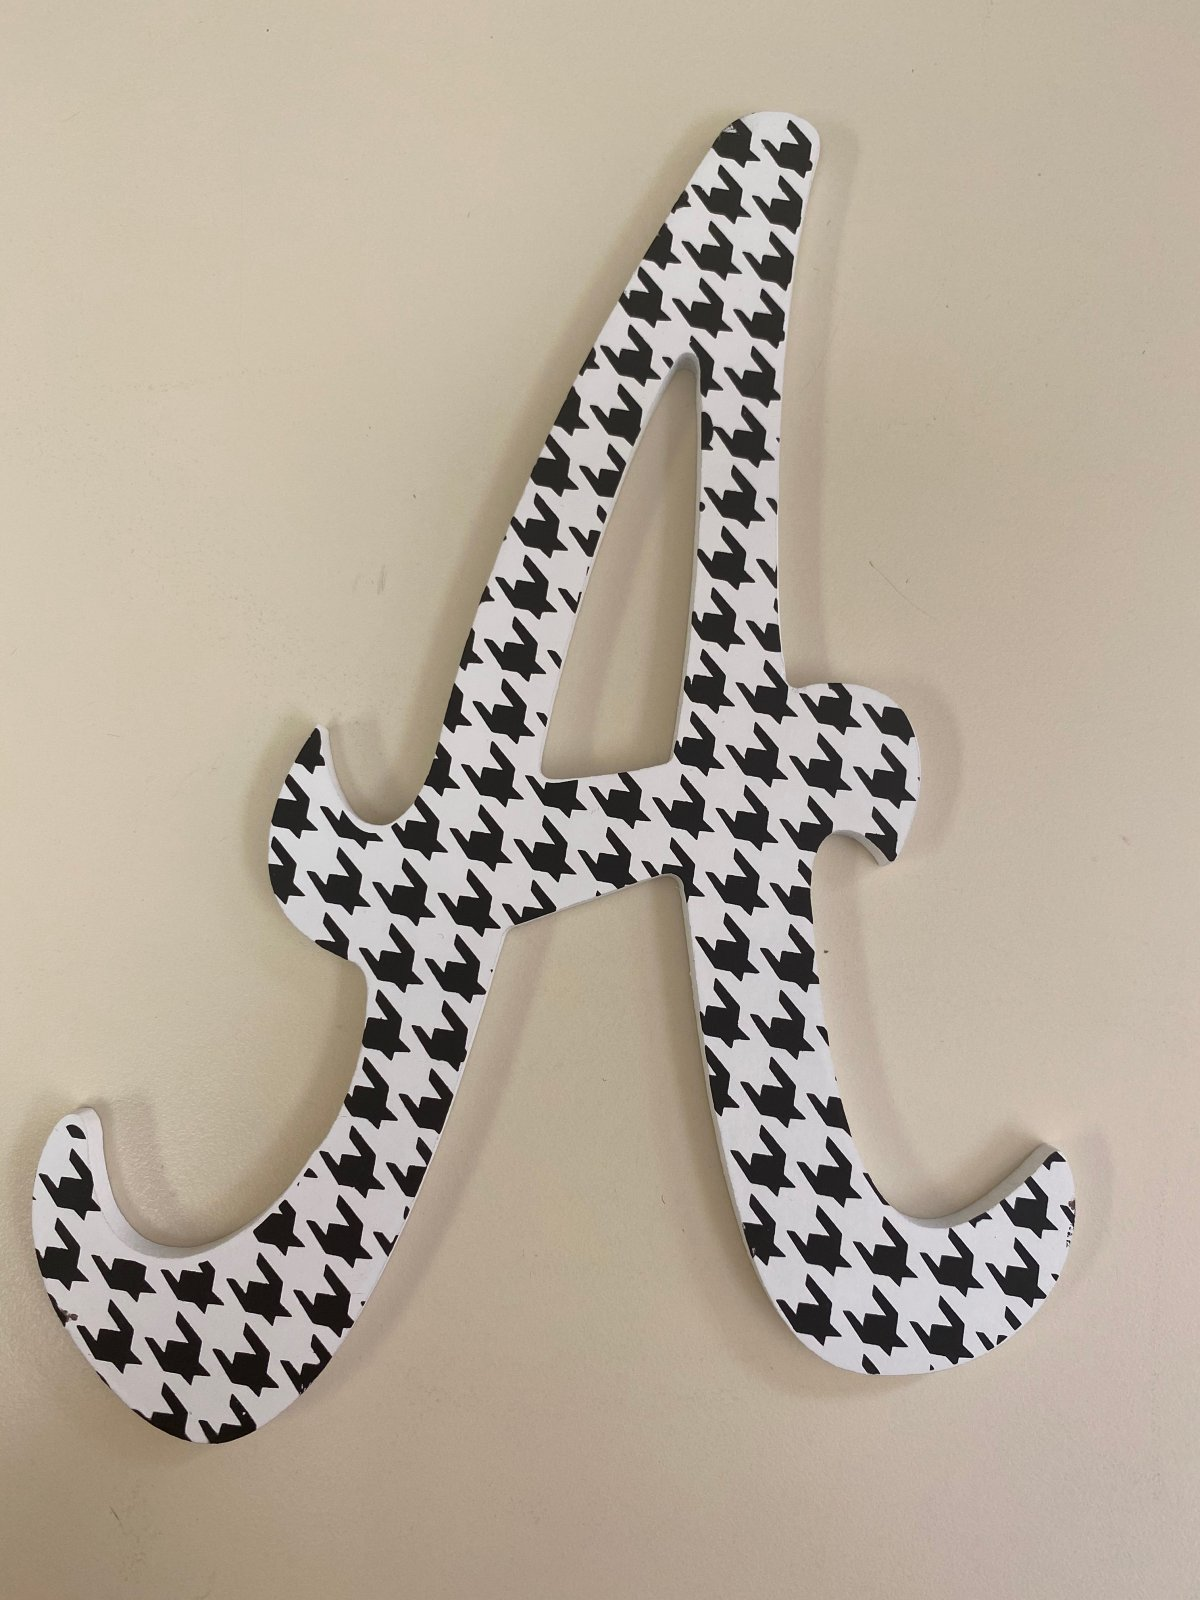 Alabama Crimson Tide A Cake Topper Houndstooth Print  10 Tall